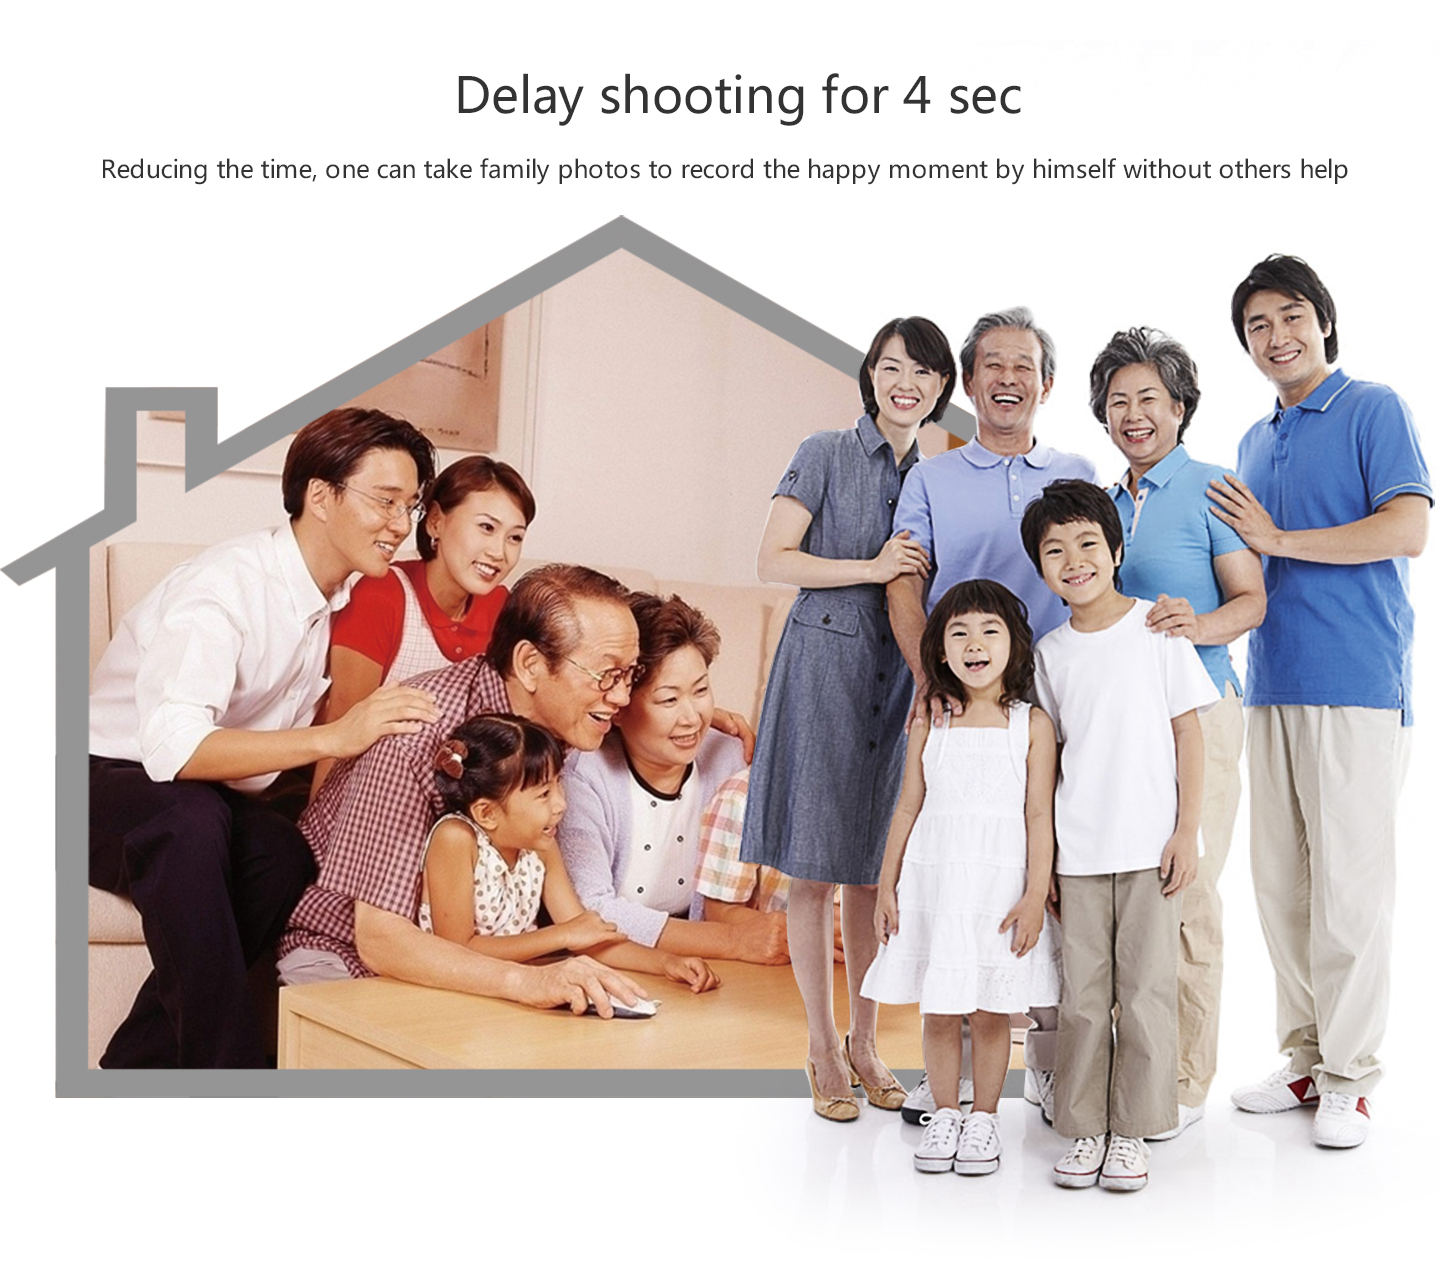 Delay shooting for 4 sec